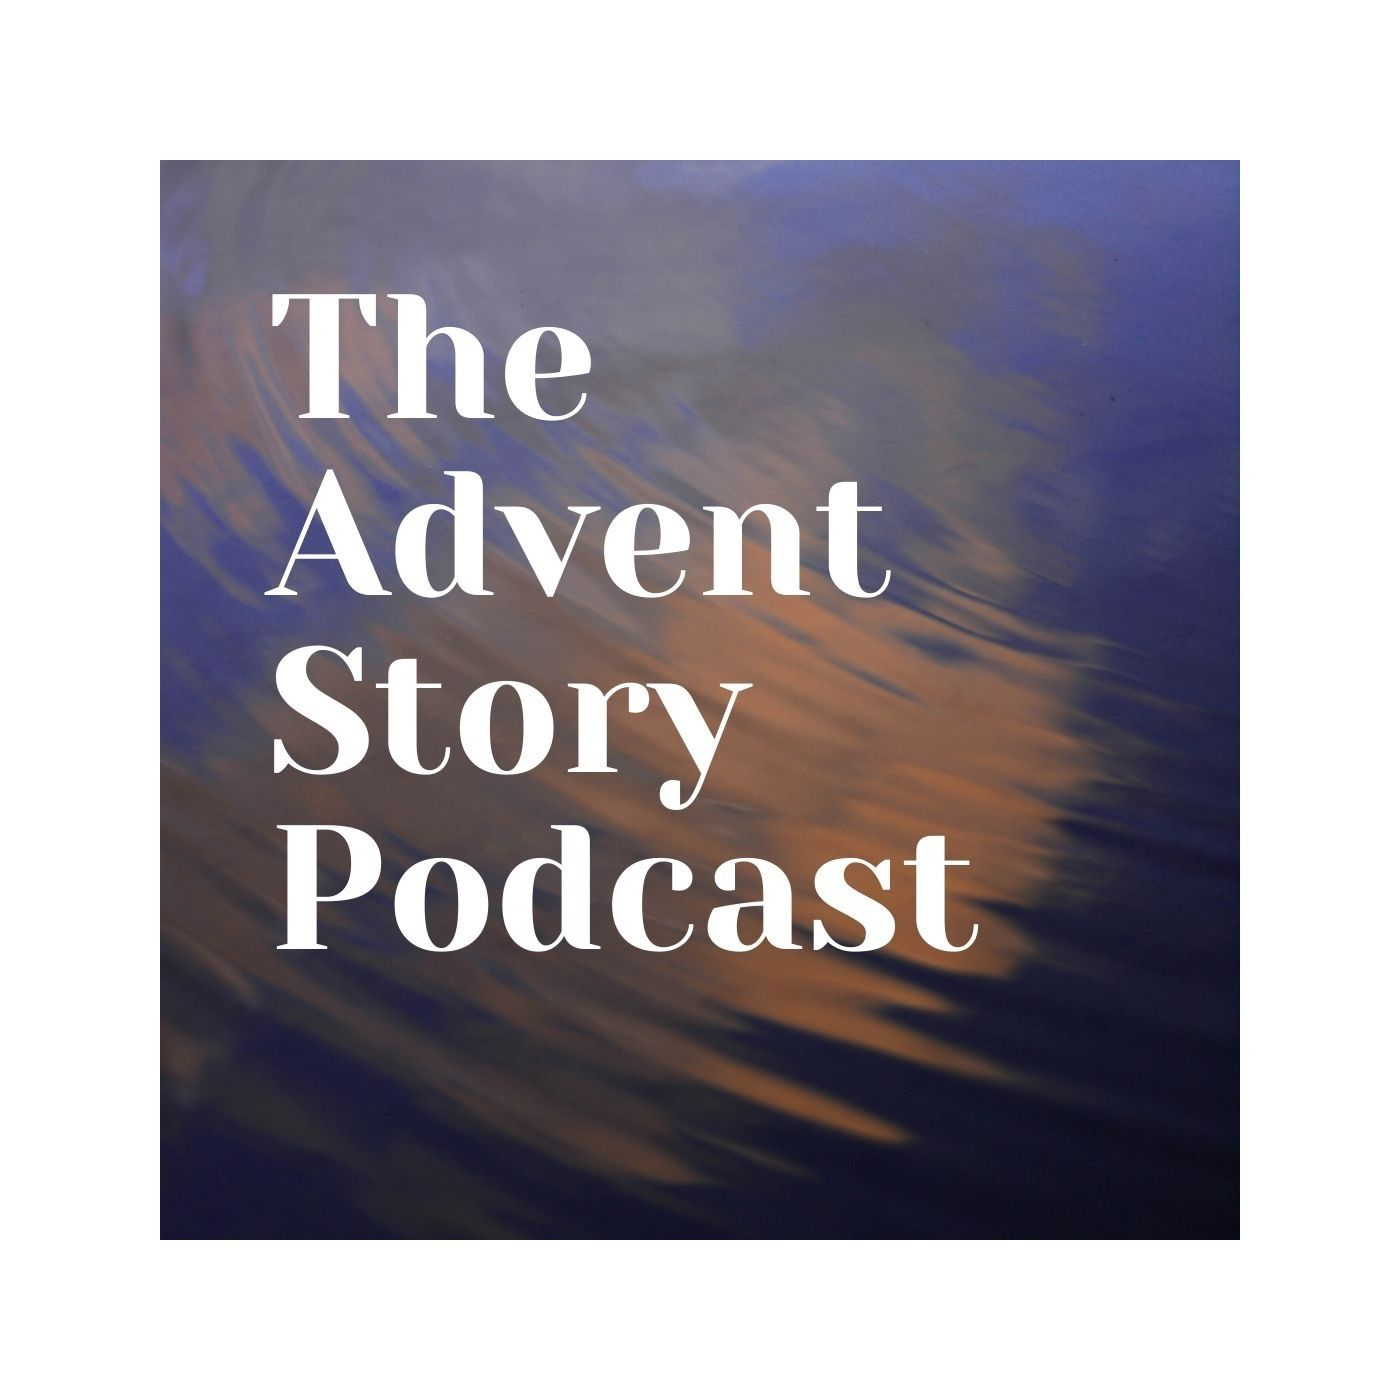 The Advent Story Podcast